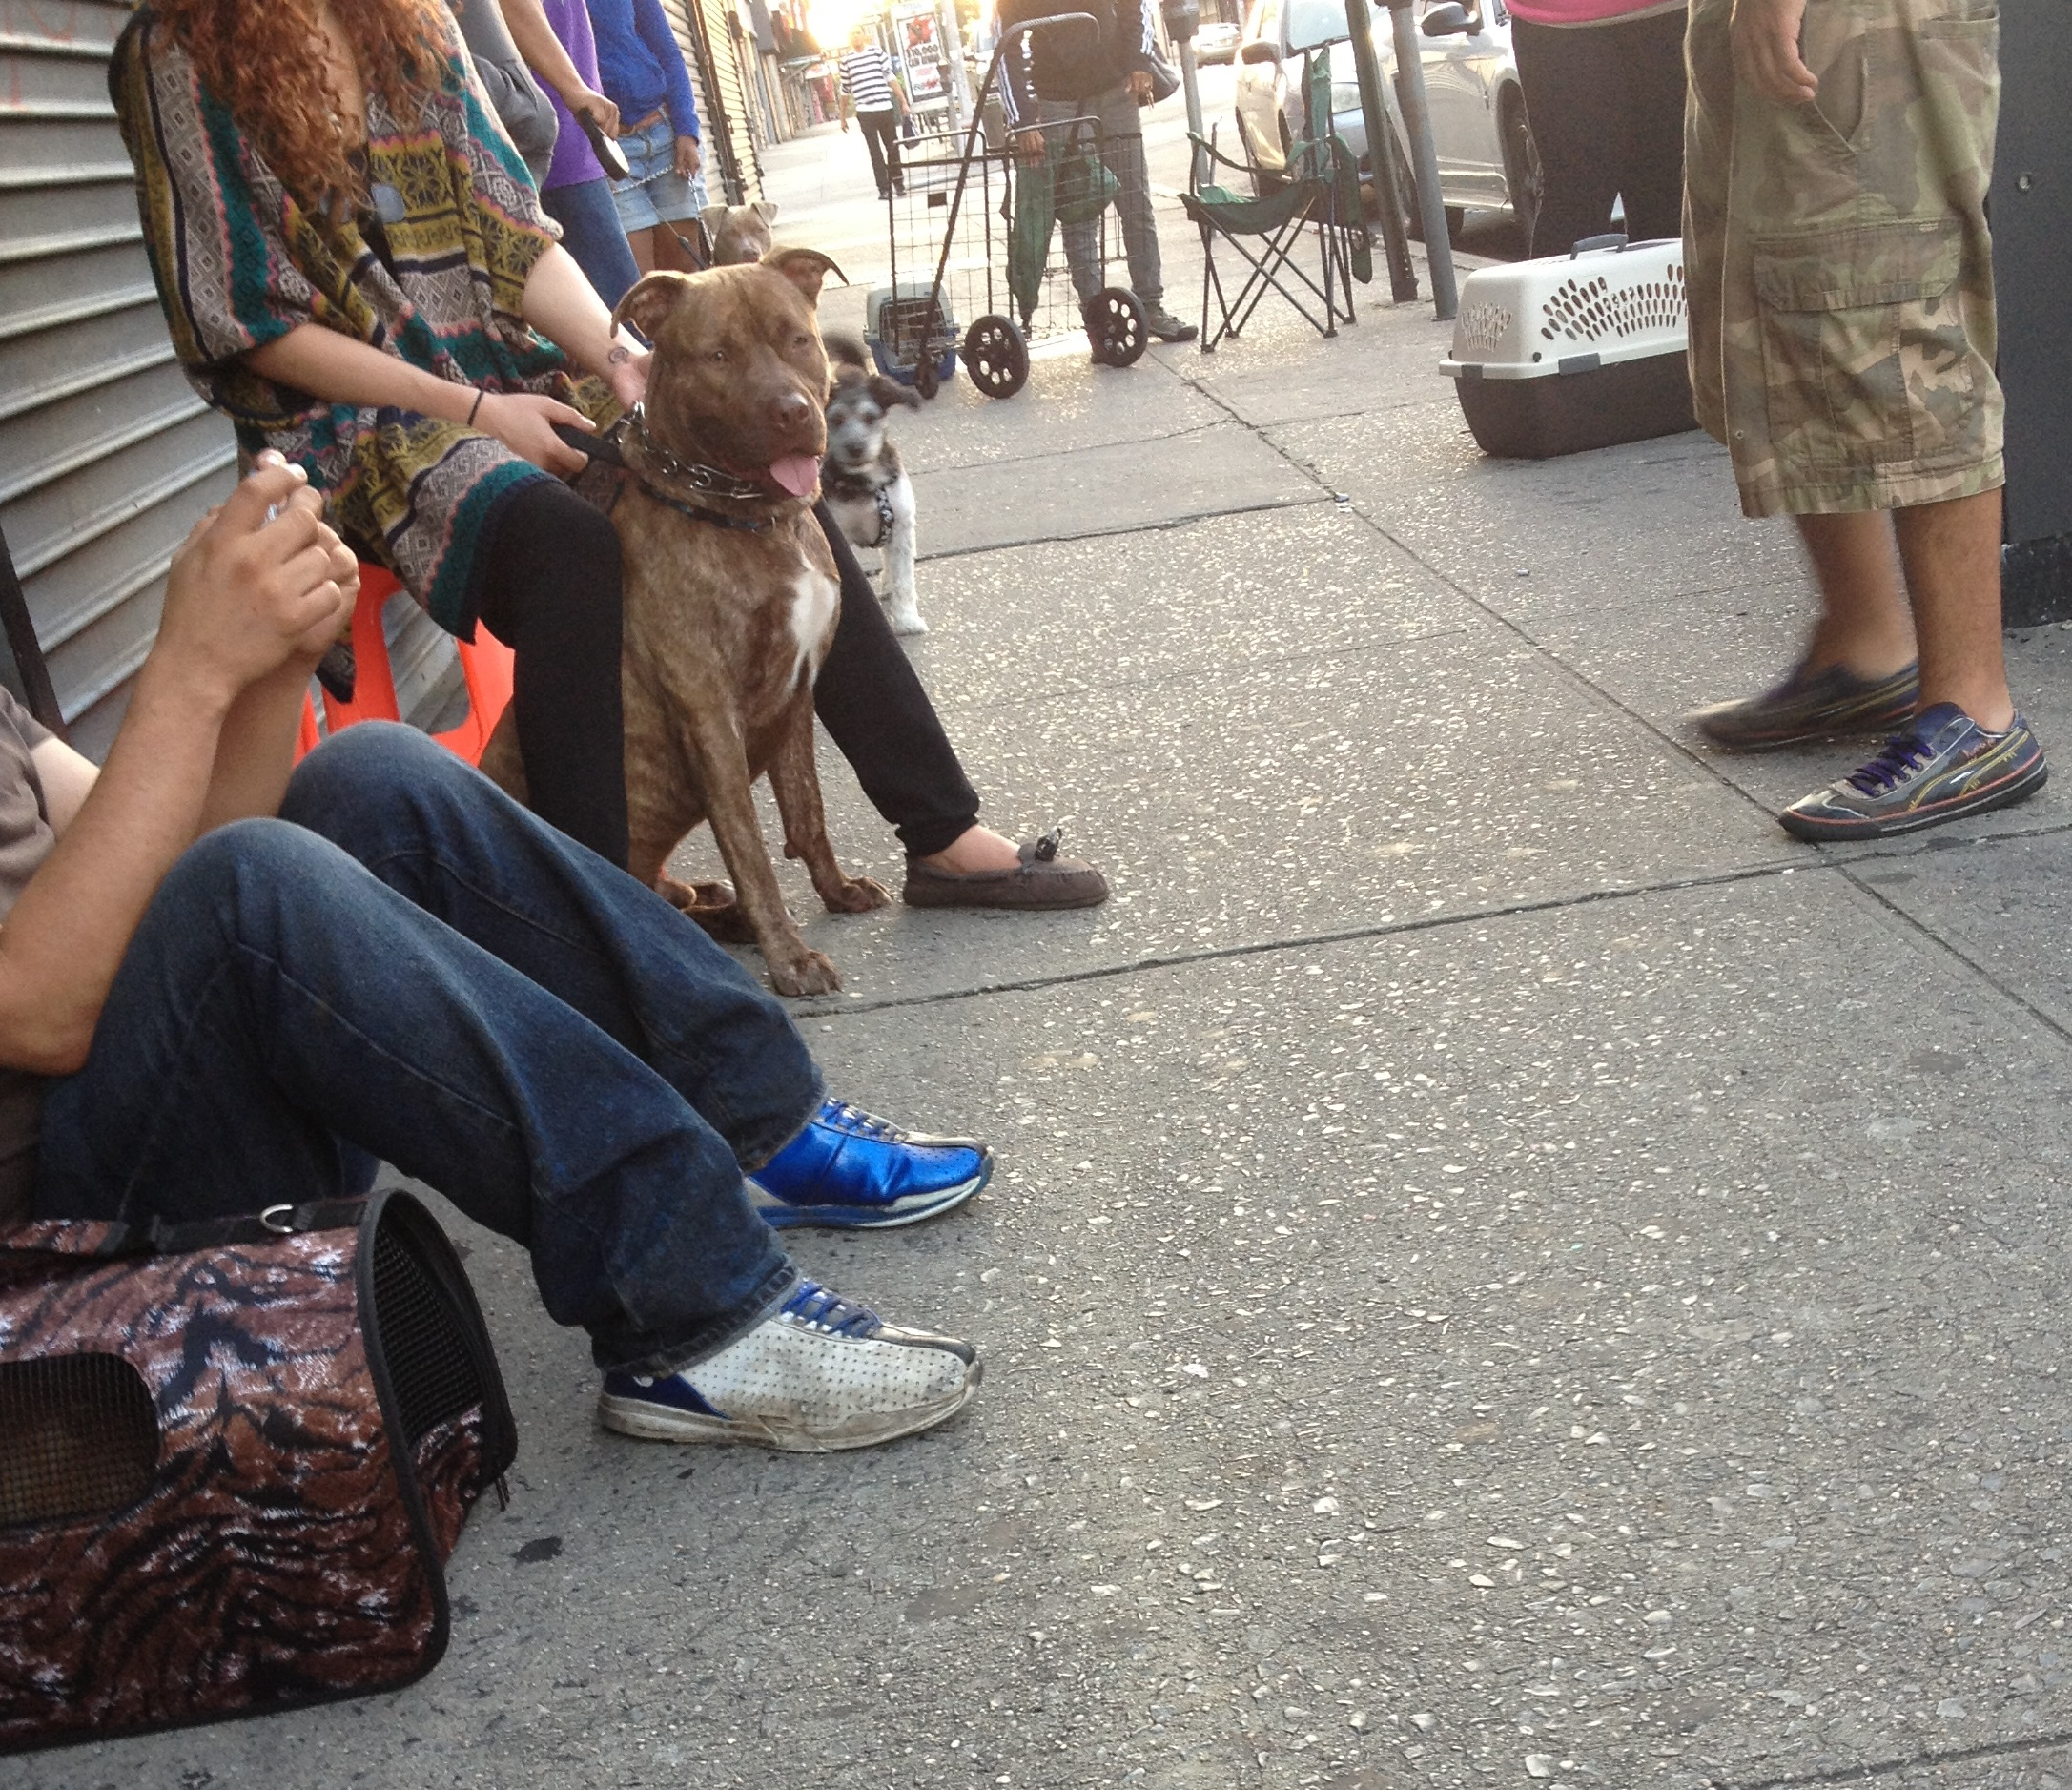 Starting at 5:00 am, New Yorkers form a line to access low-cost spay/neuter services for their pets.